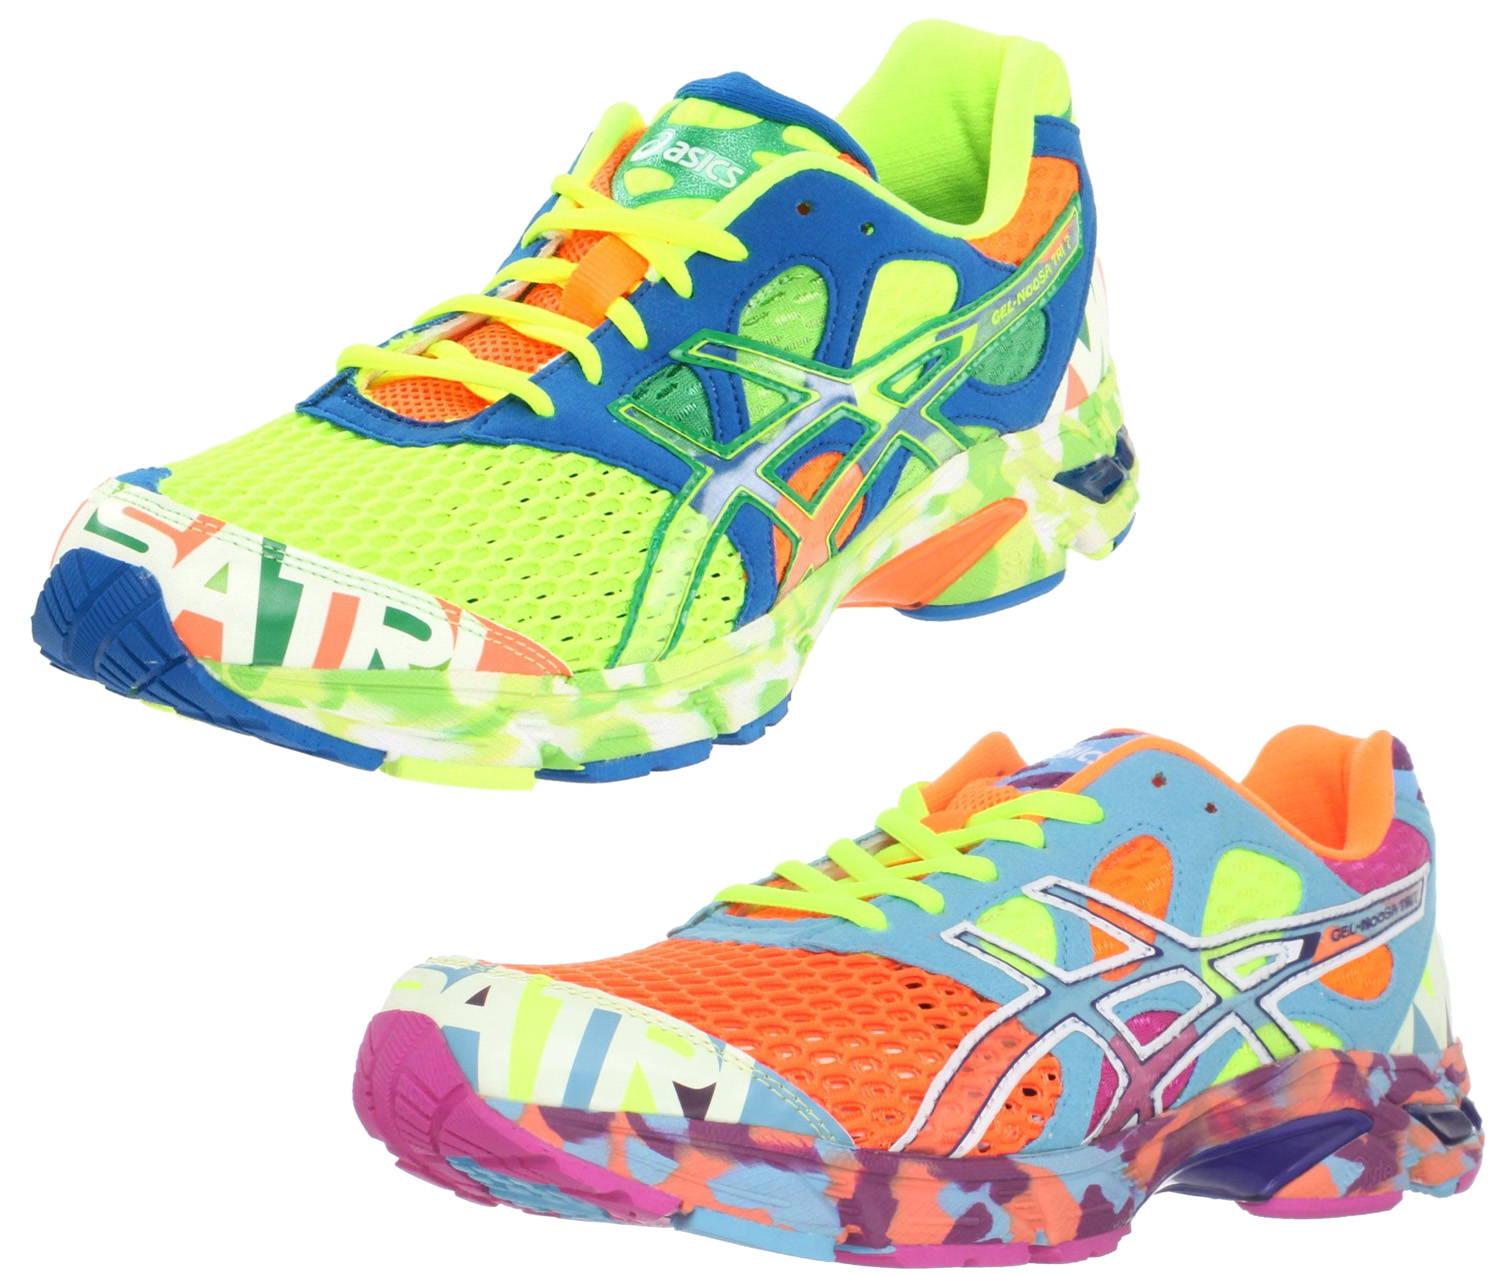 The Most Colorful Running Shoes 45